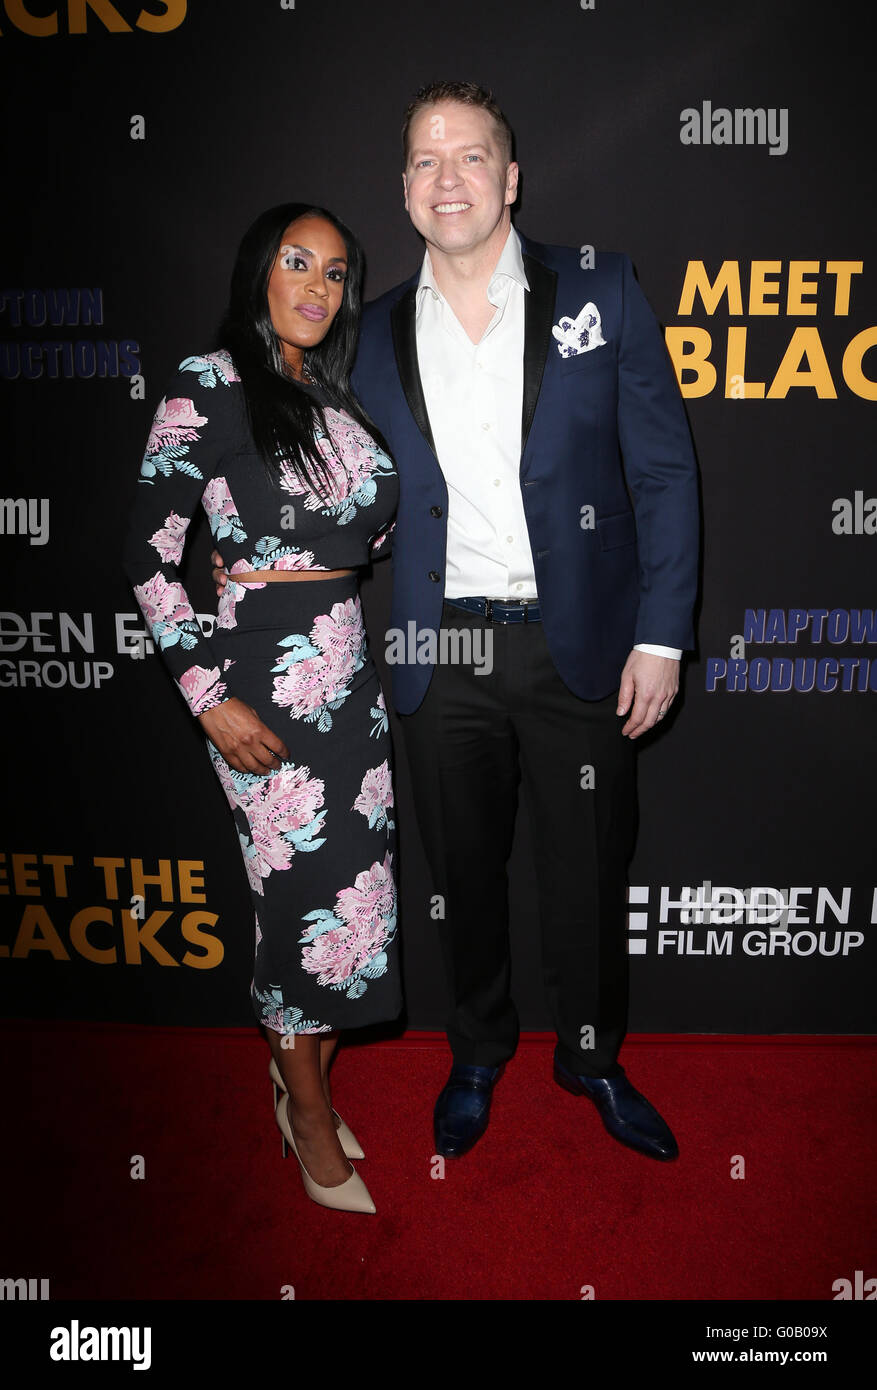 Kenya Duke Owen And Gary Owen High Resolution Stock Photography And Images Alamy Kenya duke is known for her work on aries spears: https www alamy com stock photo premiere of freestyle releasings meet the blacks at arclight hollywood 103503958 html